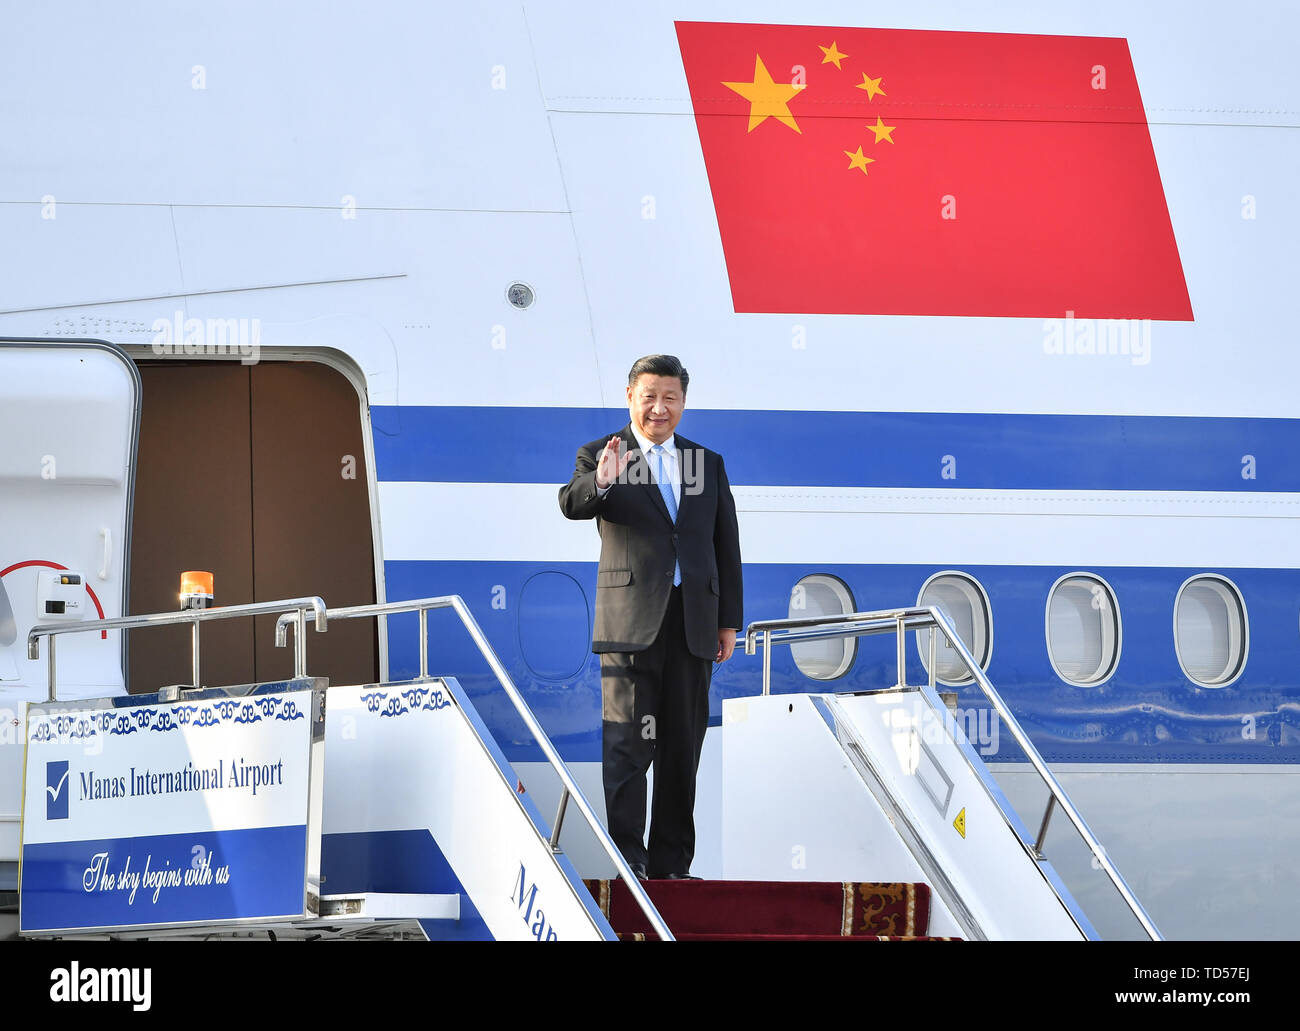 Bishkek, Kyrgyzstan. 12th June, 2019. Chinese President Xi Jinping disembarks from the airplane upon his arrival in Bishkek, Kyrgyzstan, June 12, 2019. Xi arrived here Wednesday for a state visit to Kyrgyzstan and the 19th Shanghai Cooperation Organization (SCO) summit. Credit: Yin Bogu/Xinhua/Alamy Live News - Stock Image